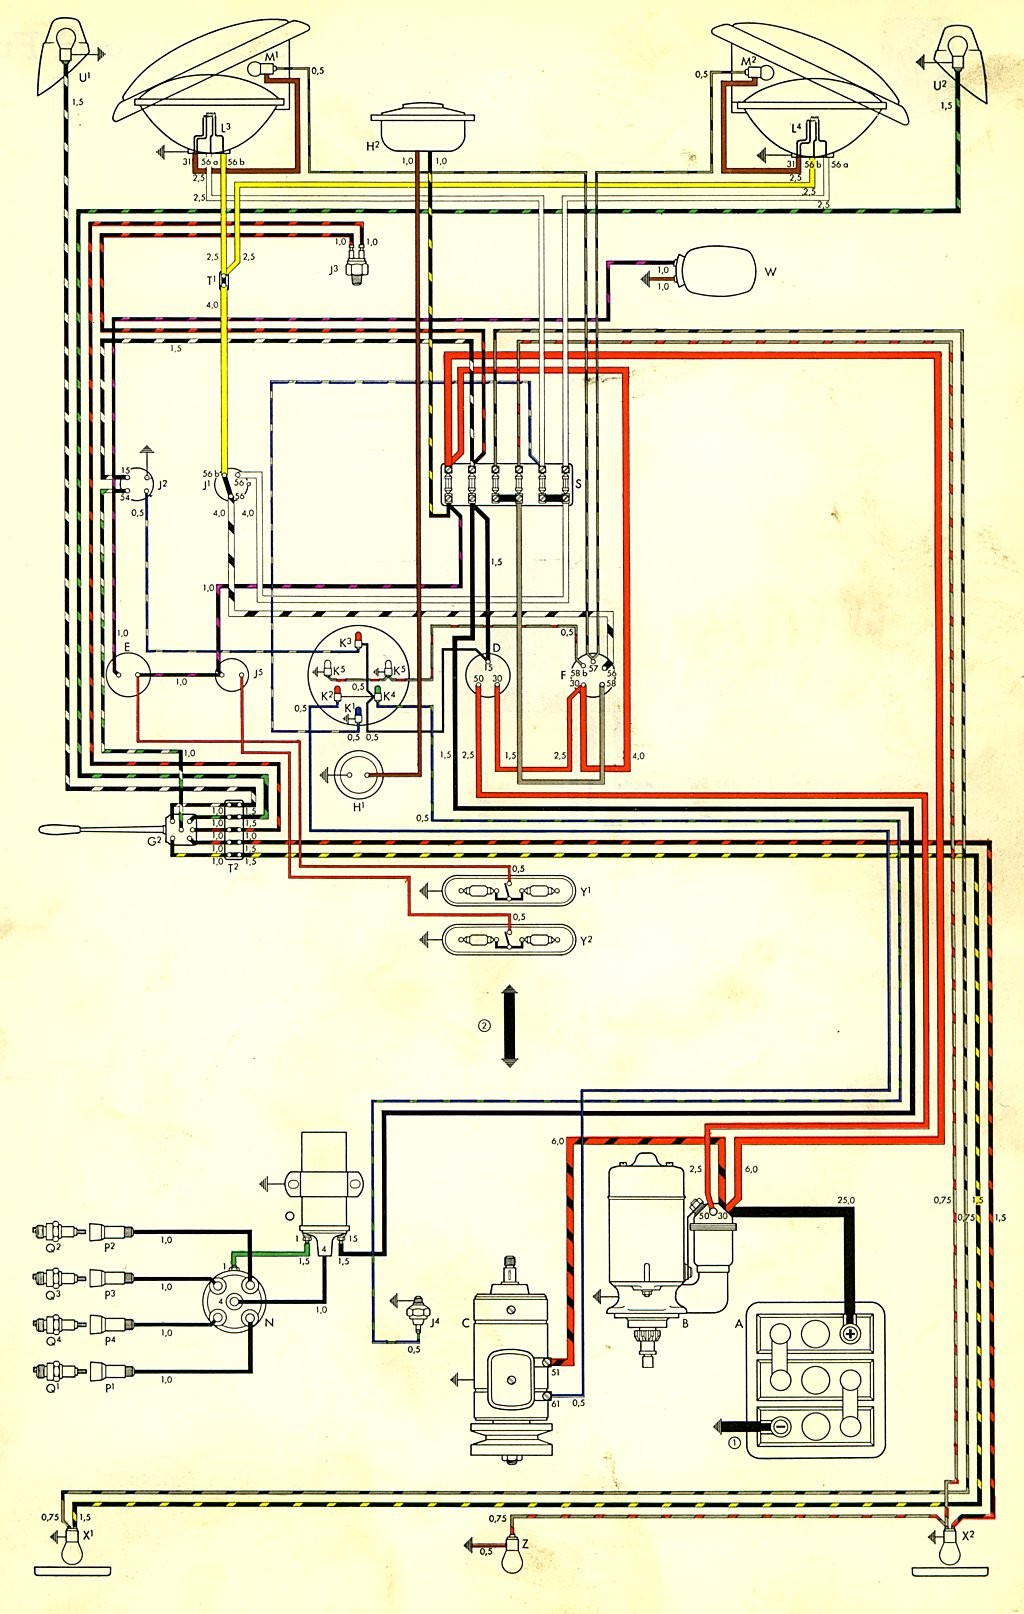 58 Vw Alternator Wiring Diagram Libraries 1974 Bug Getting Ready With U202258 Bus Harness